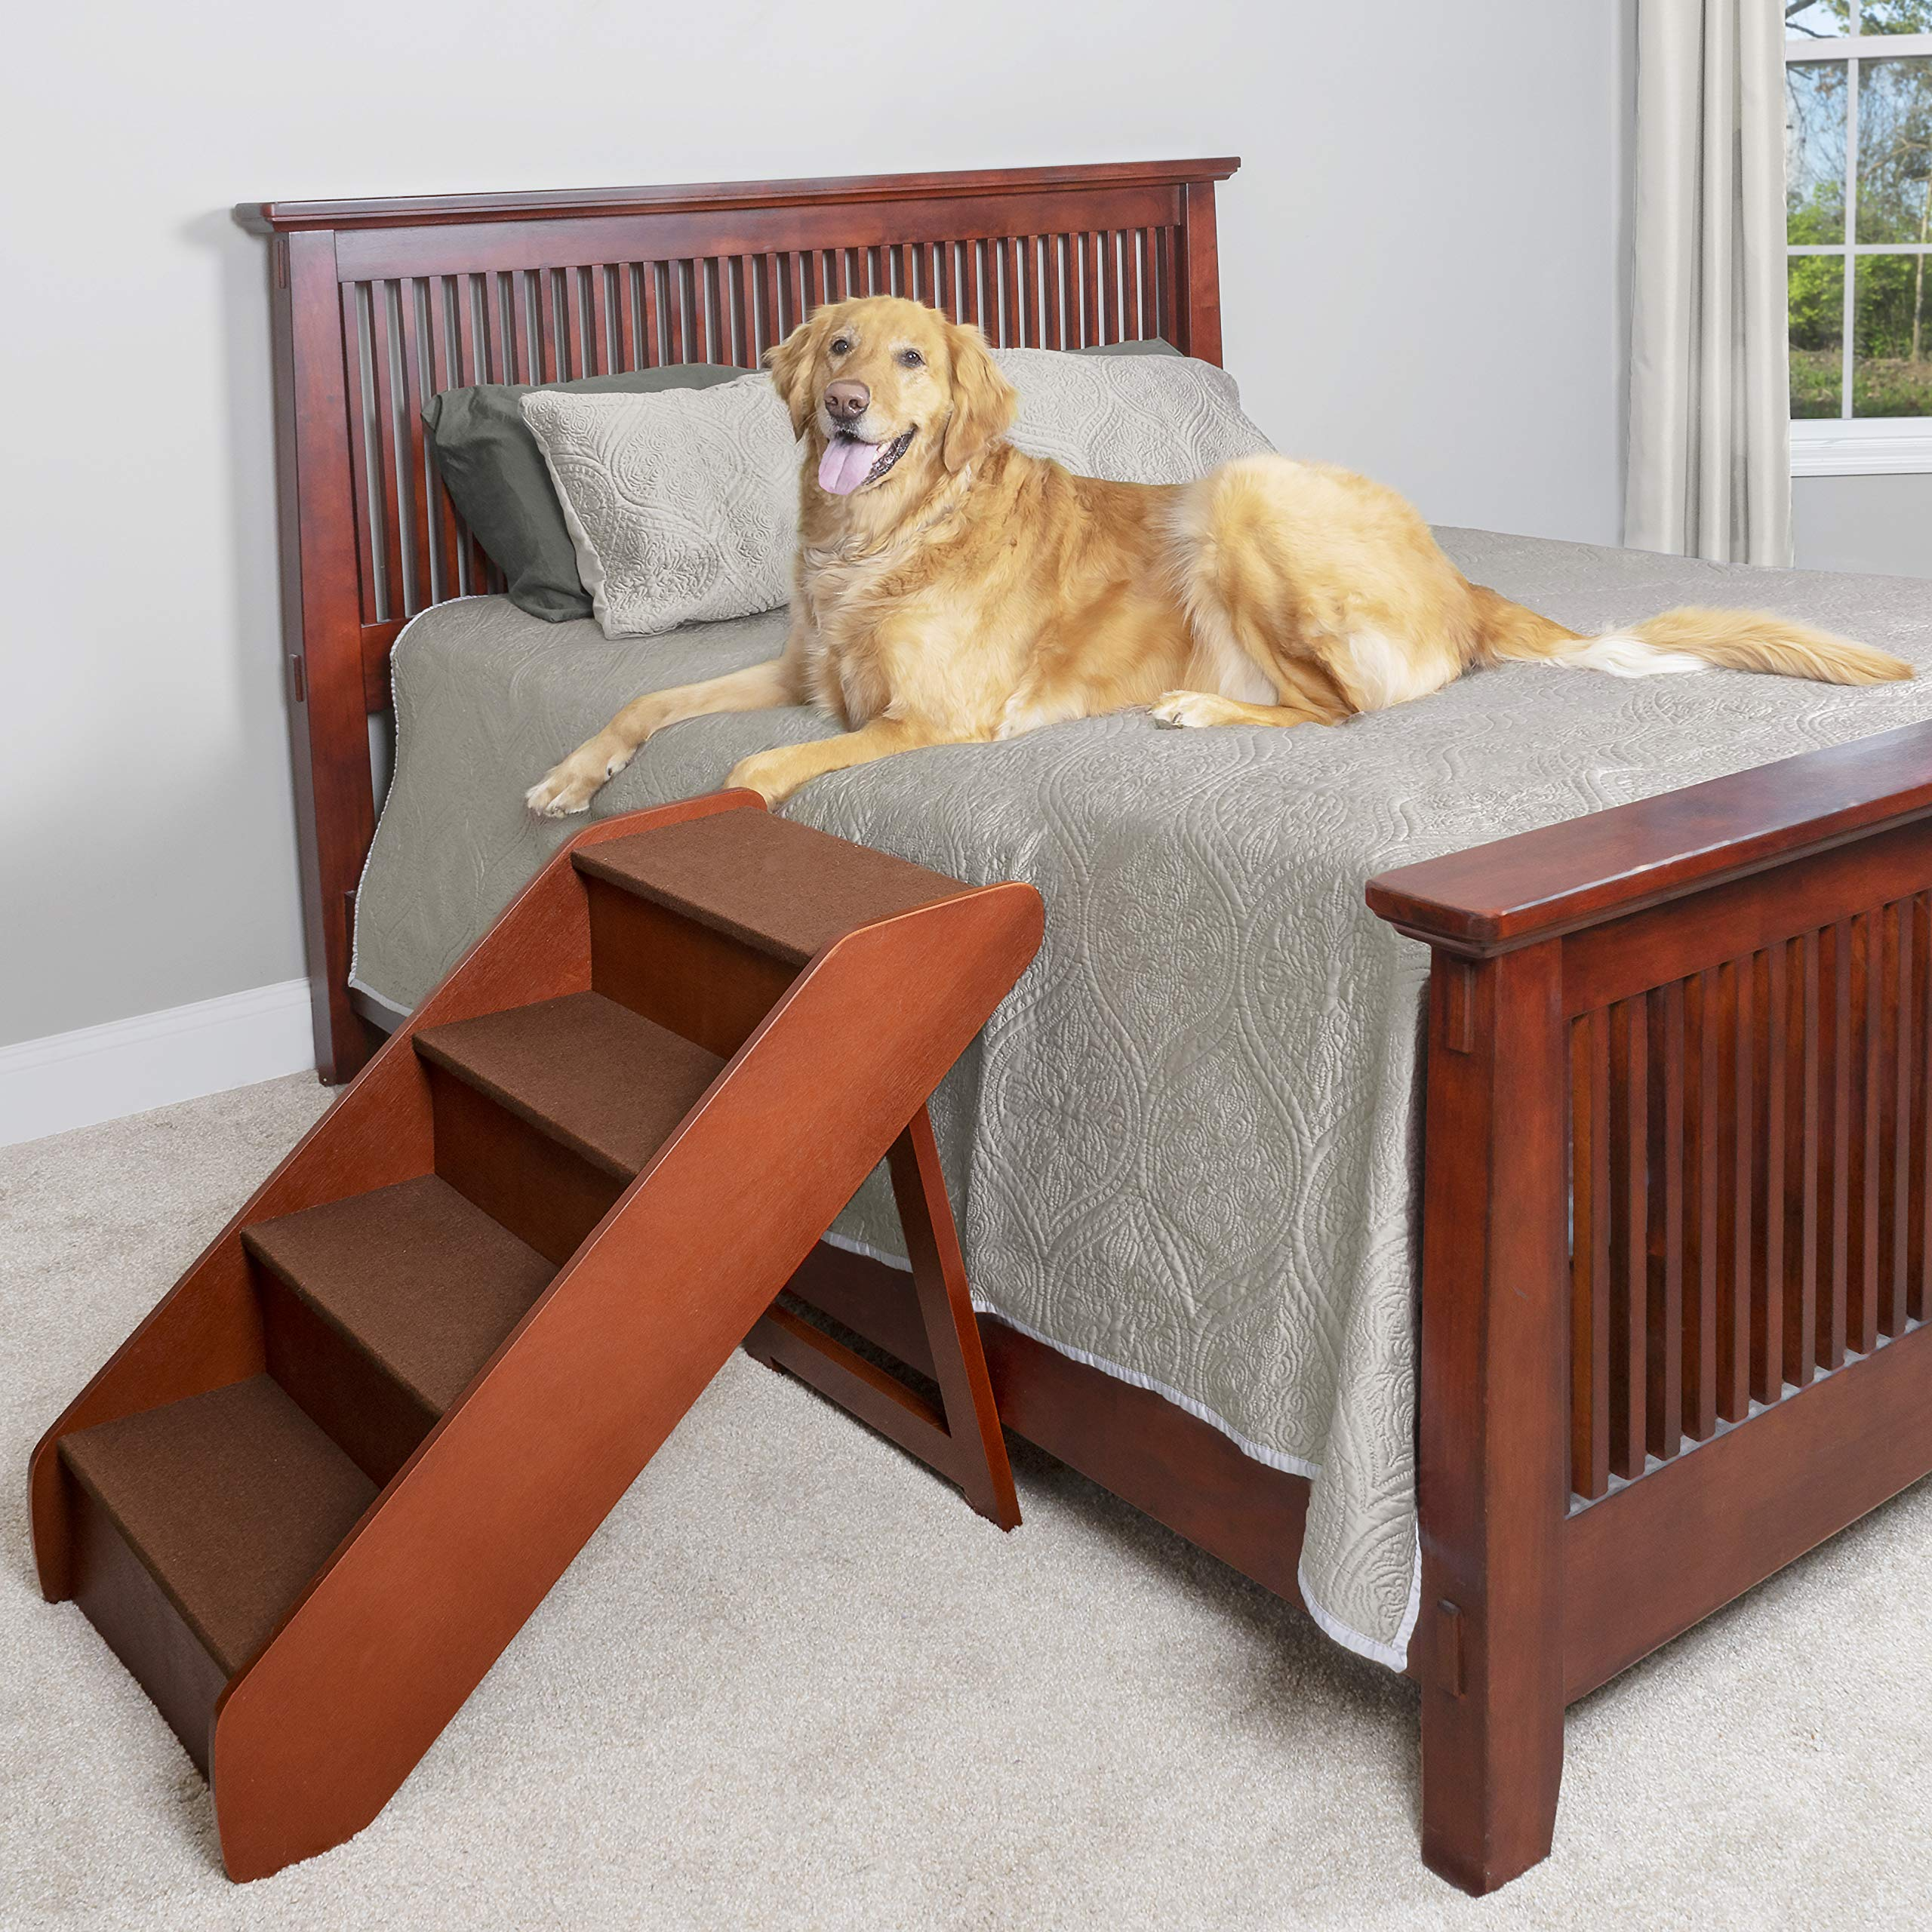 PetSafe Solvit PupSTEP Wood Pet Stairs for Dogs and Cats, Foldable - X-Large by PetSafe